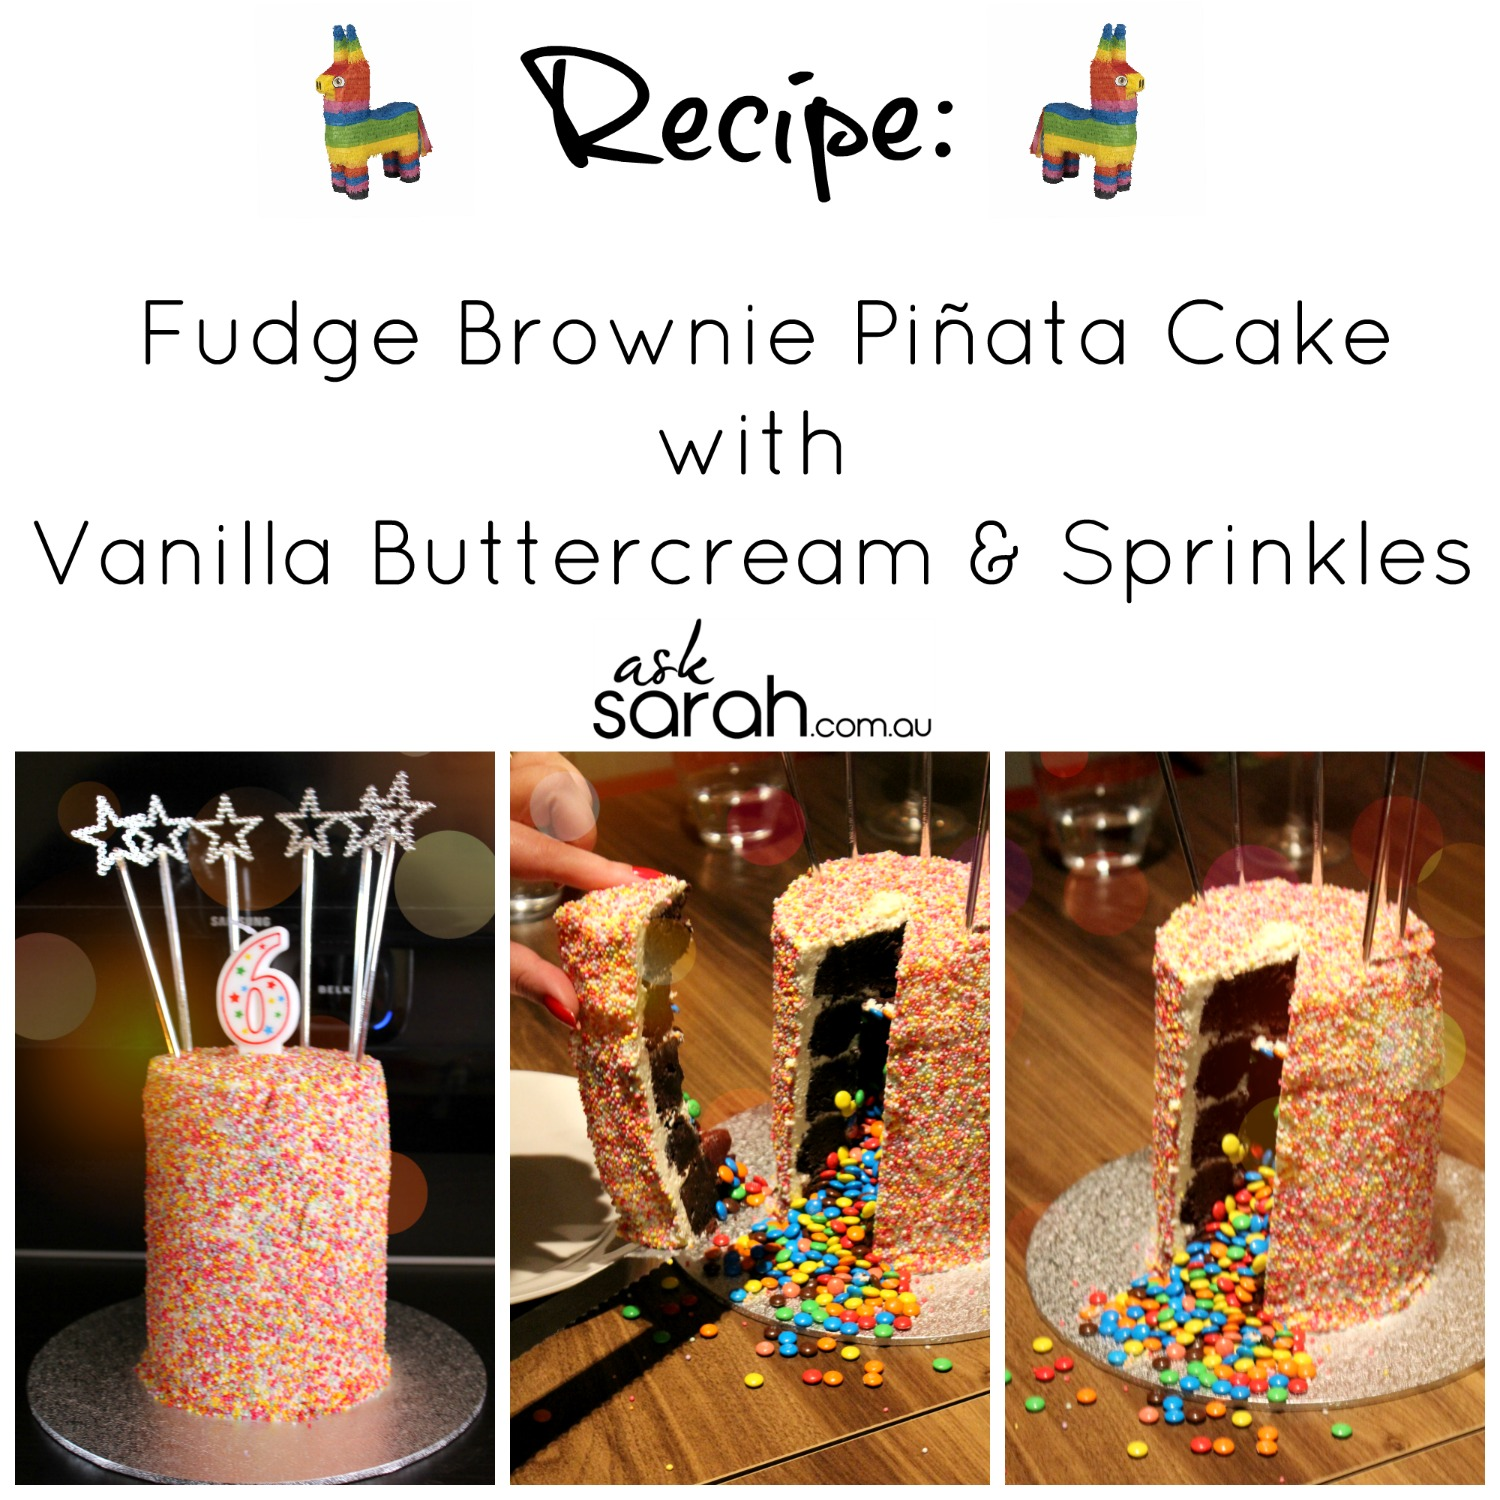 Recipe: Fudge Brownie Piñata Cake with Vanilla Buttercream & Sprinkles